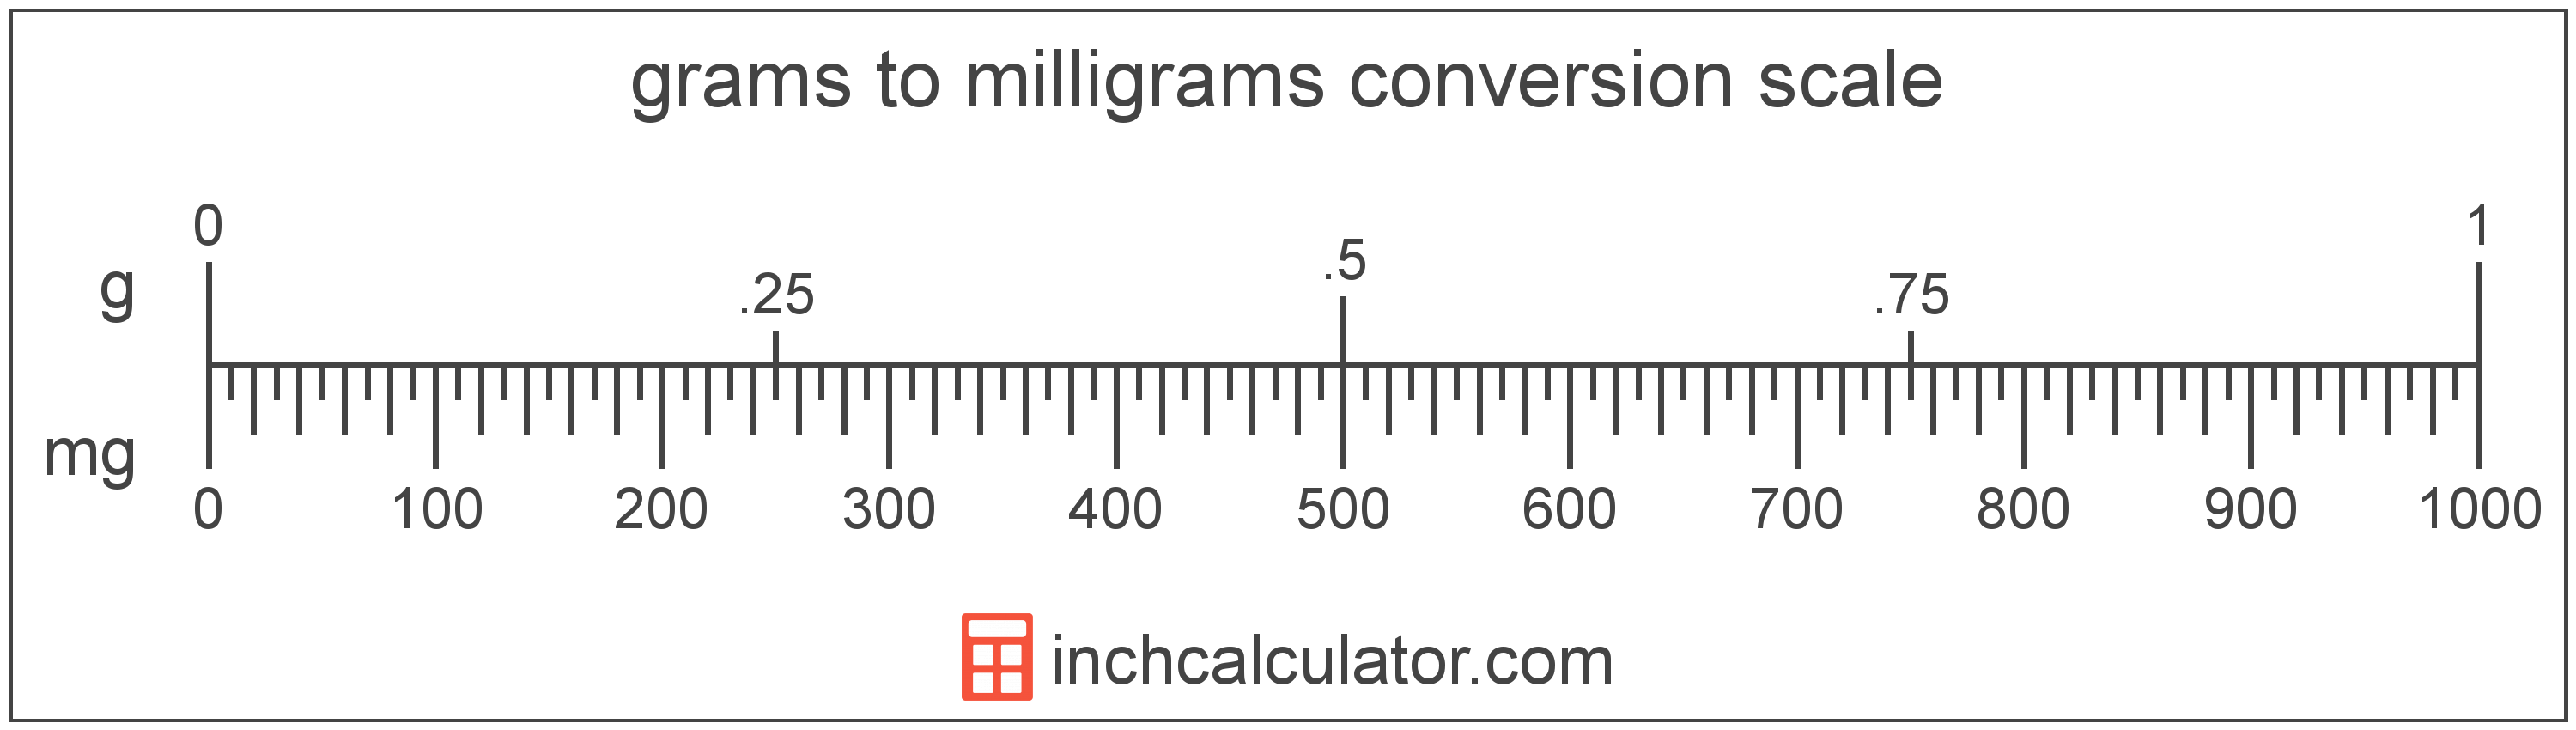 conversion scale showing milligrams and equivalent grams weight values